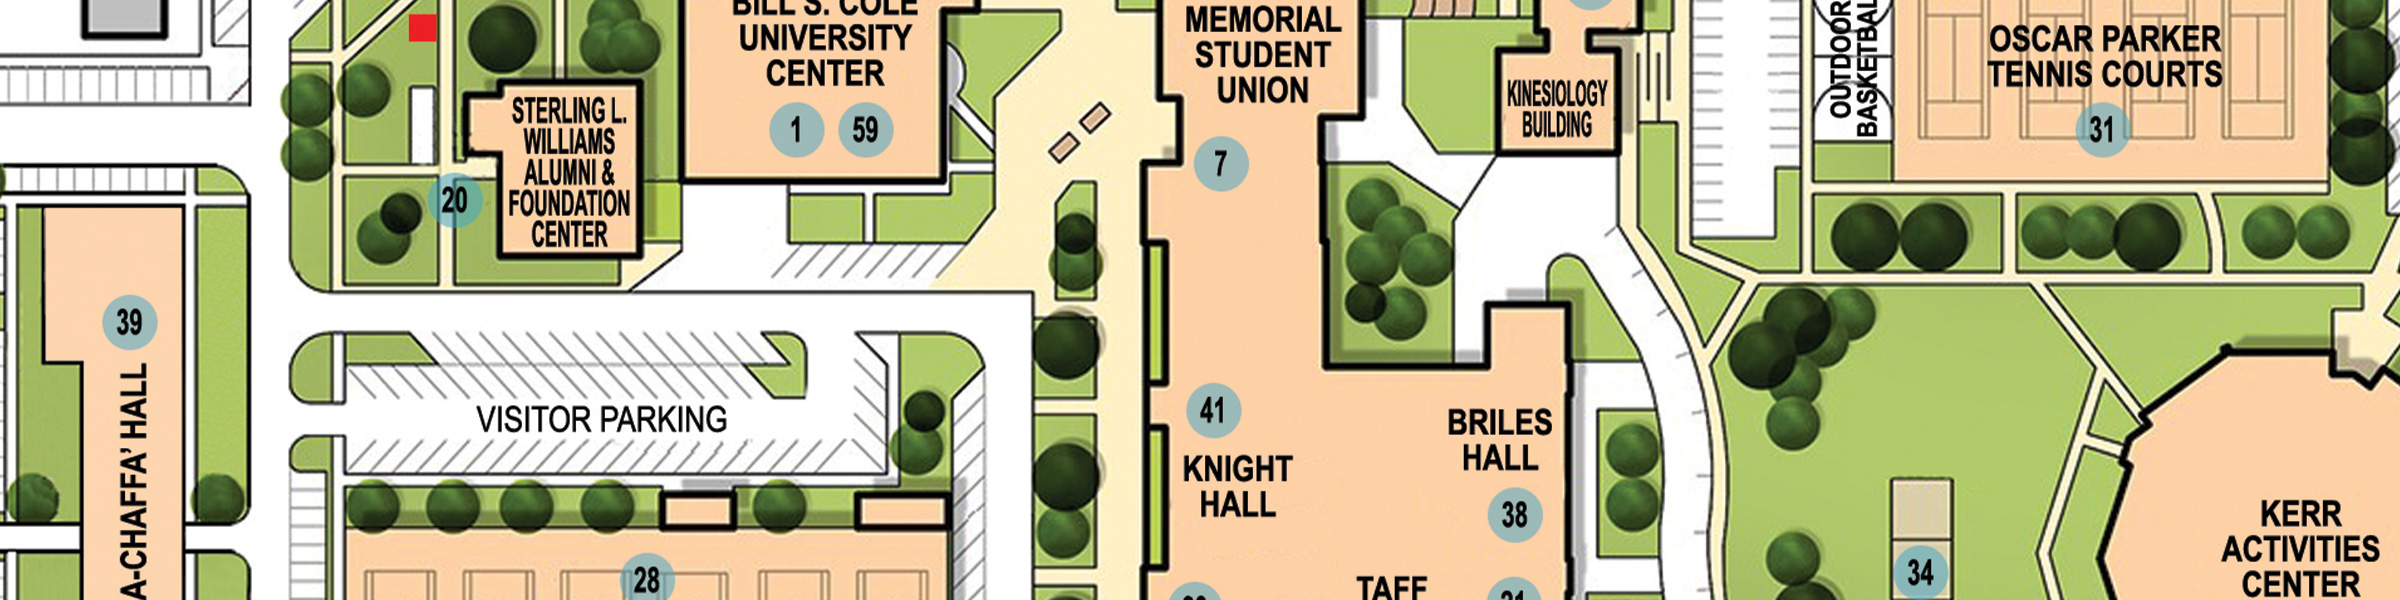 Slider image with link to ECU Campus Map.